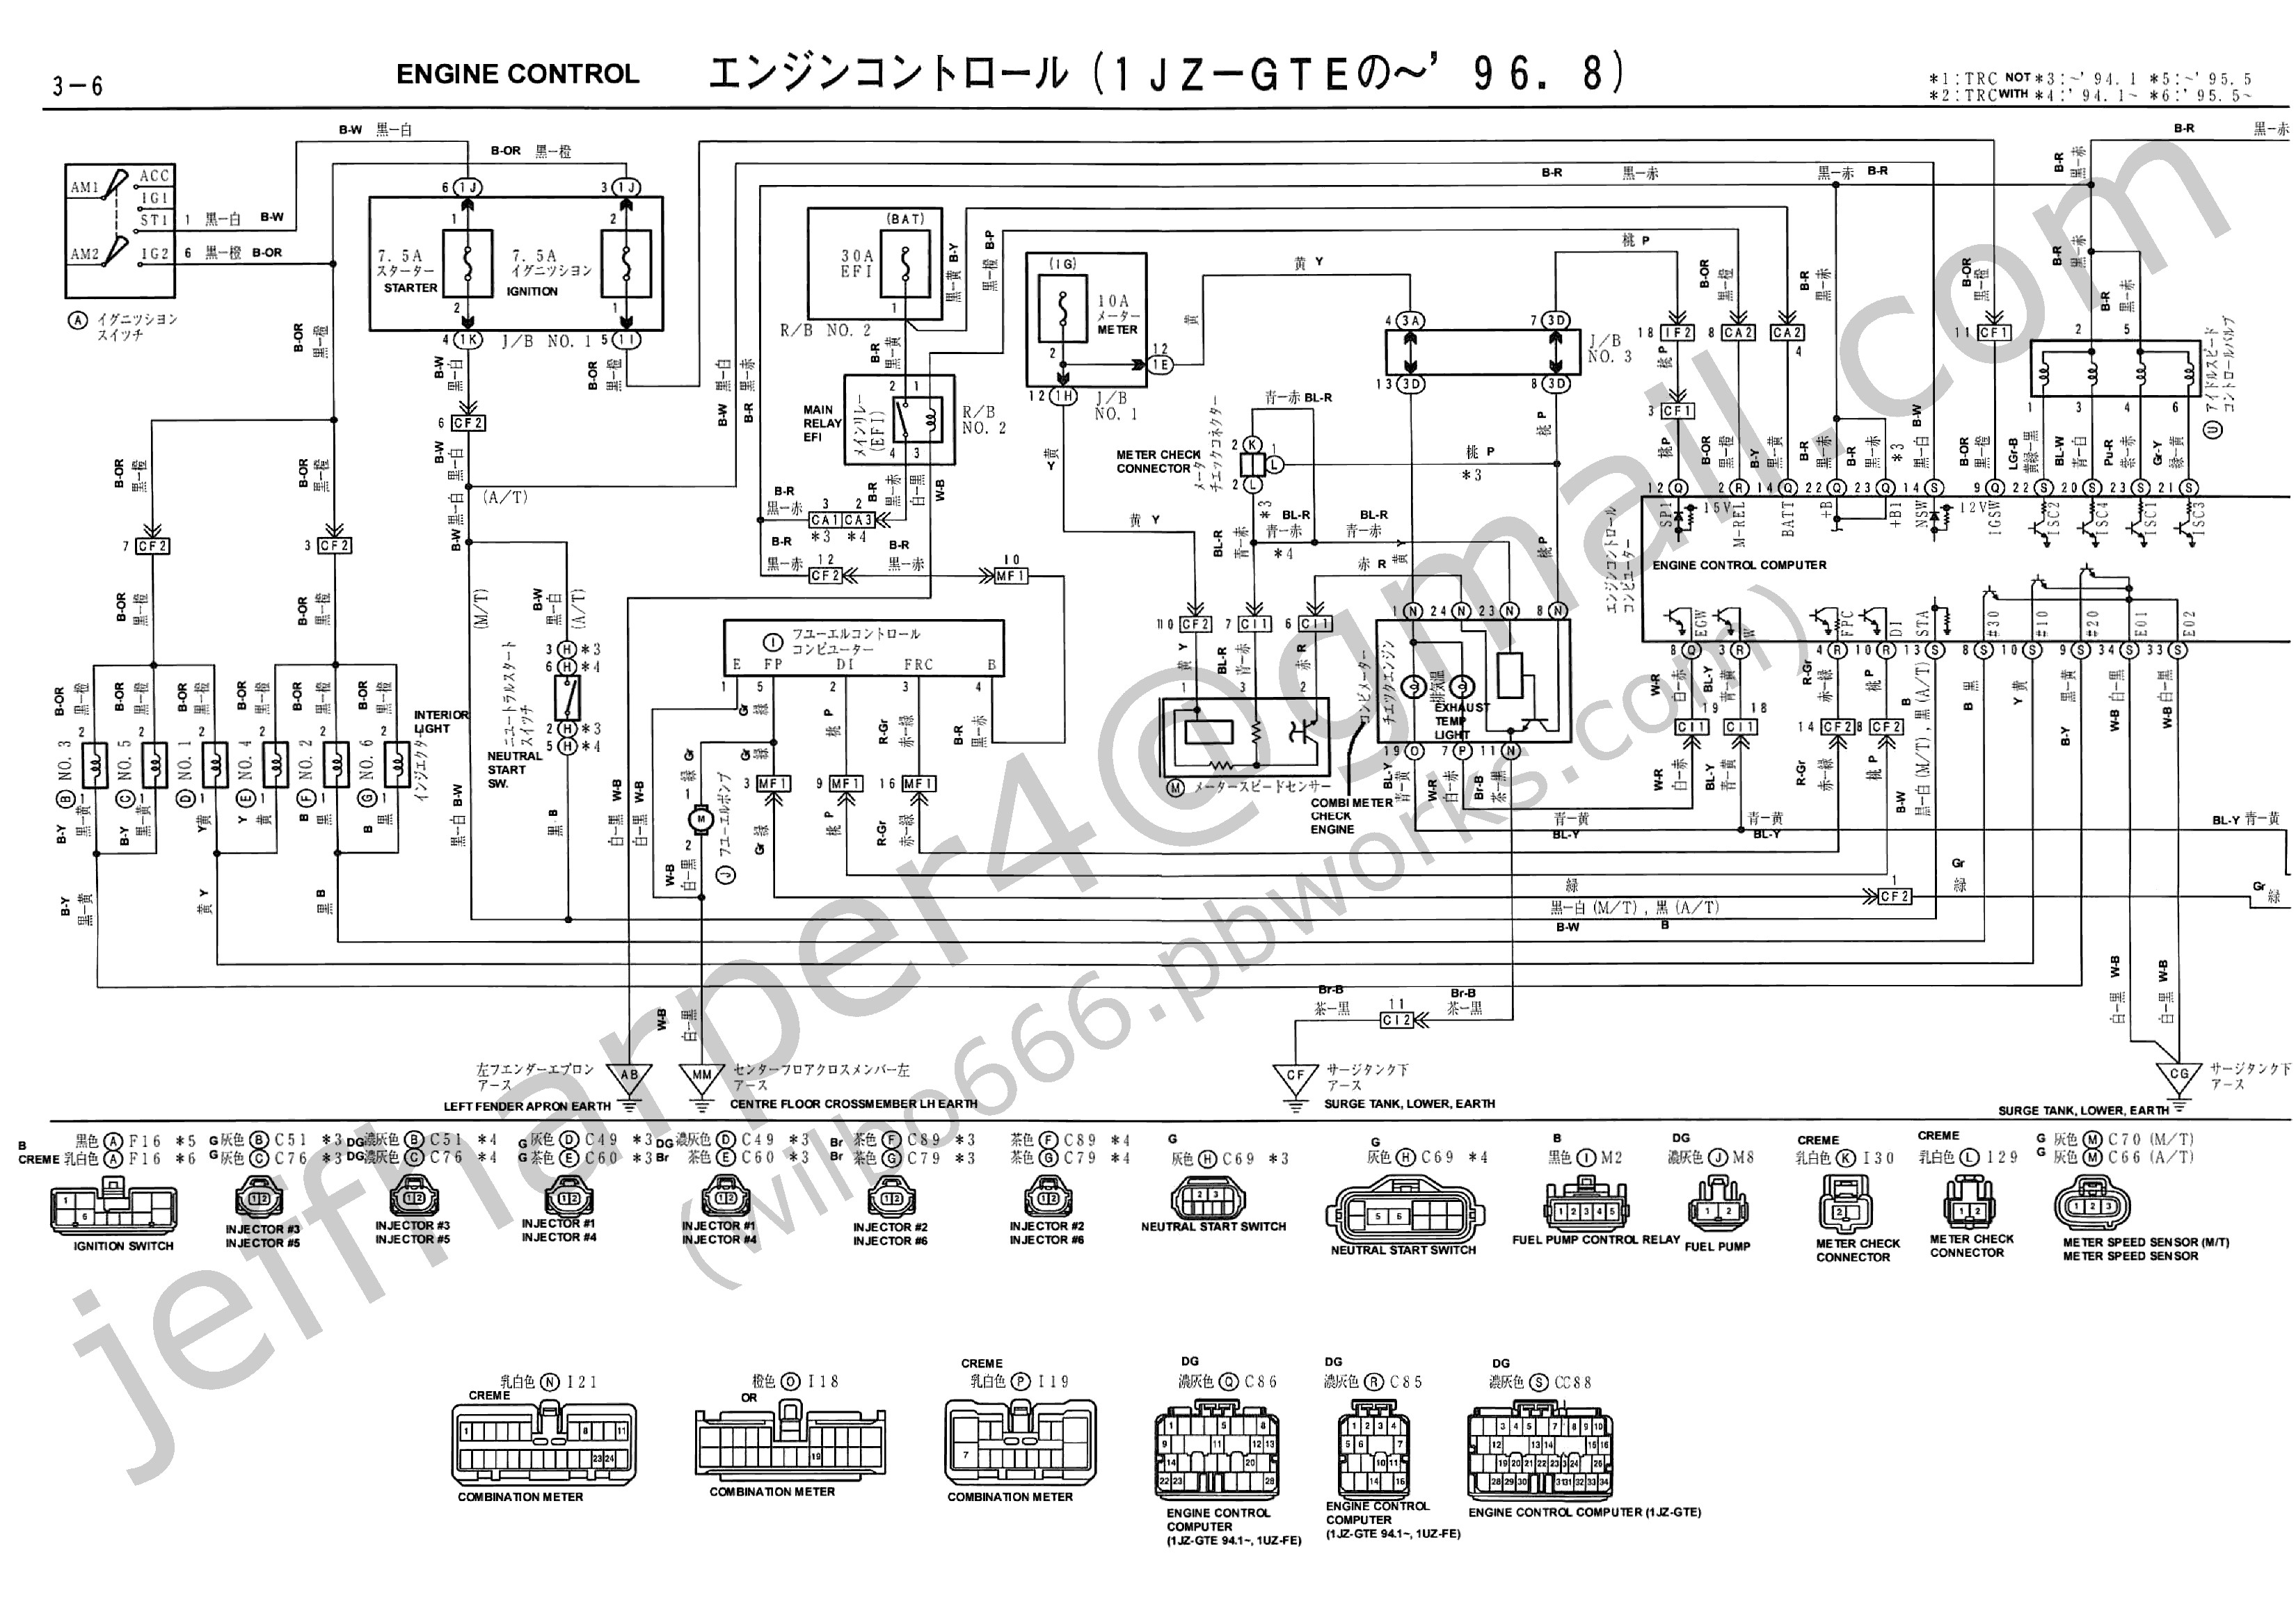 Toyota Camry Alternator Diagram